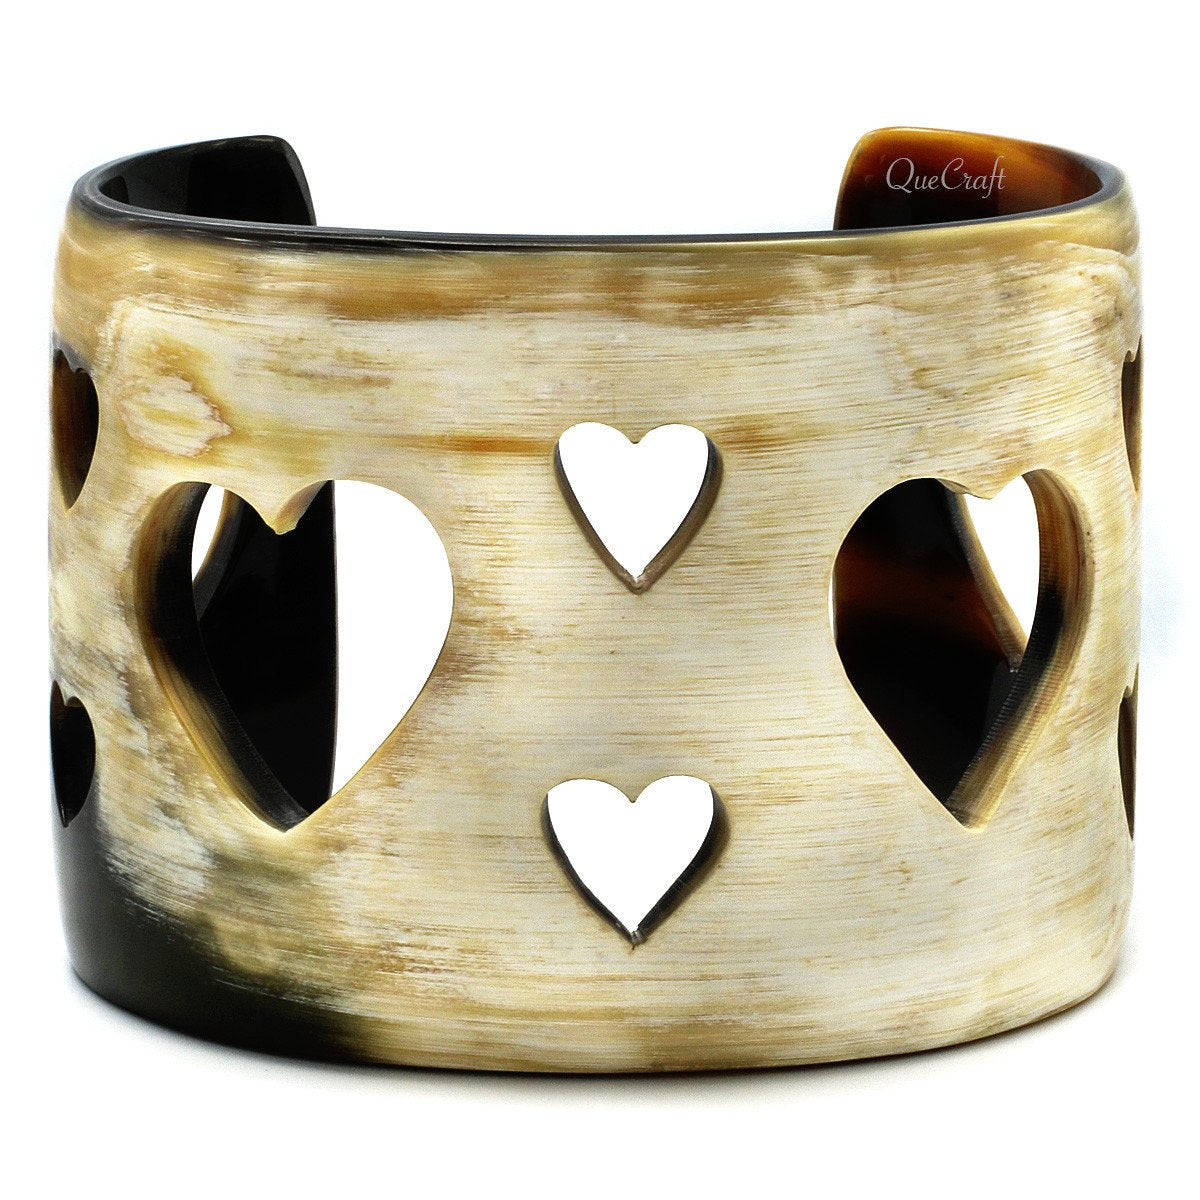 Horn Cuff Bracelet #4551 - HORN.JEWELRY by QueCraft